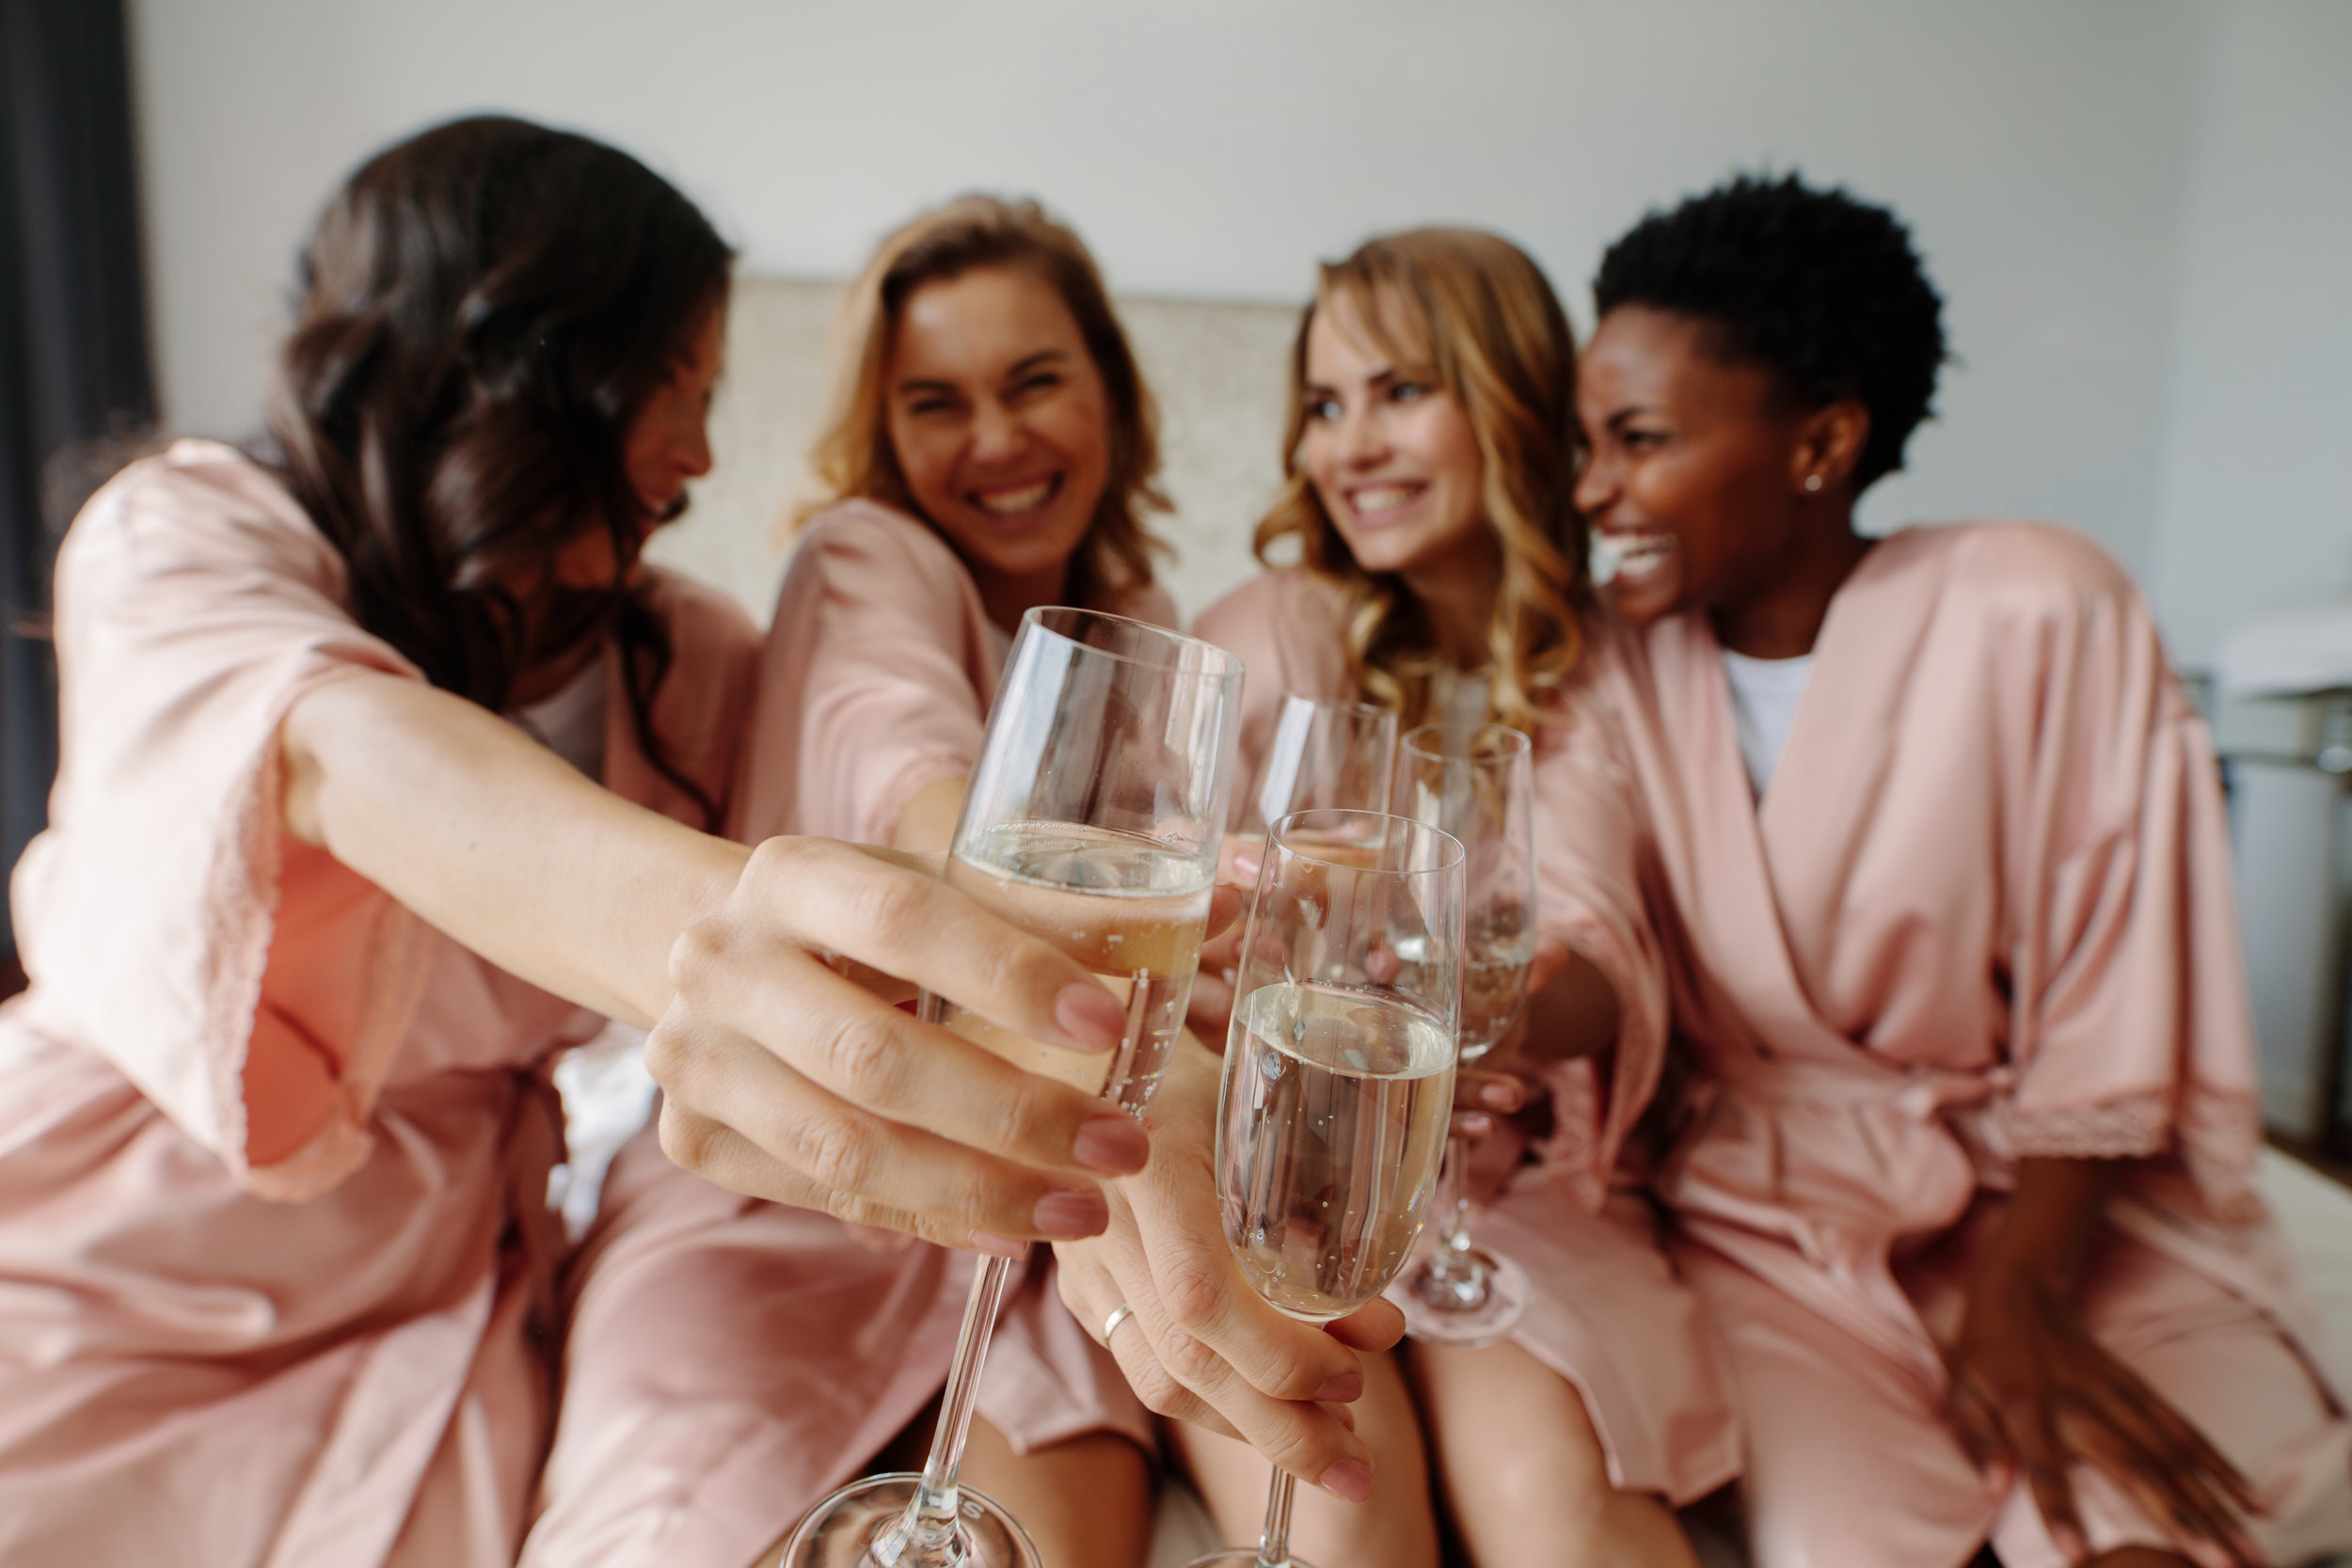 Celebrations - There is always something to celebrate are you planning a bachelor or bachelorette party, birthday, anniversary, or family reunion. I can't think of a better way to celebrate than with travel.